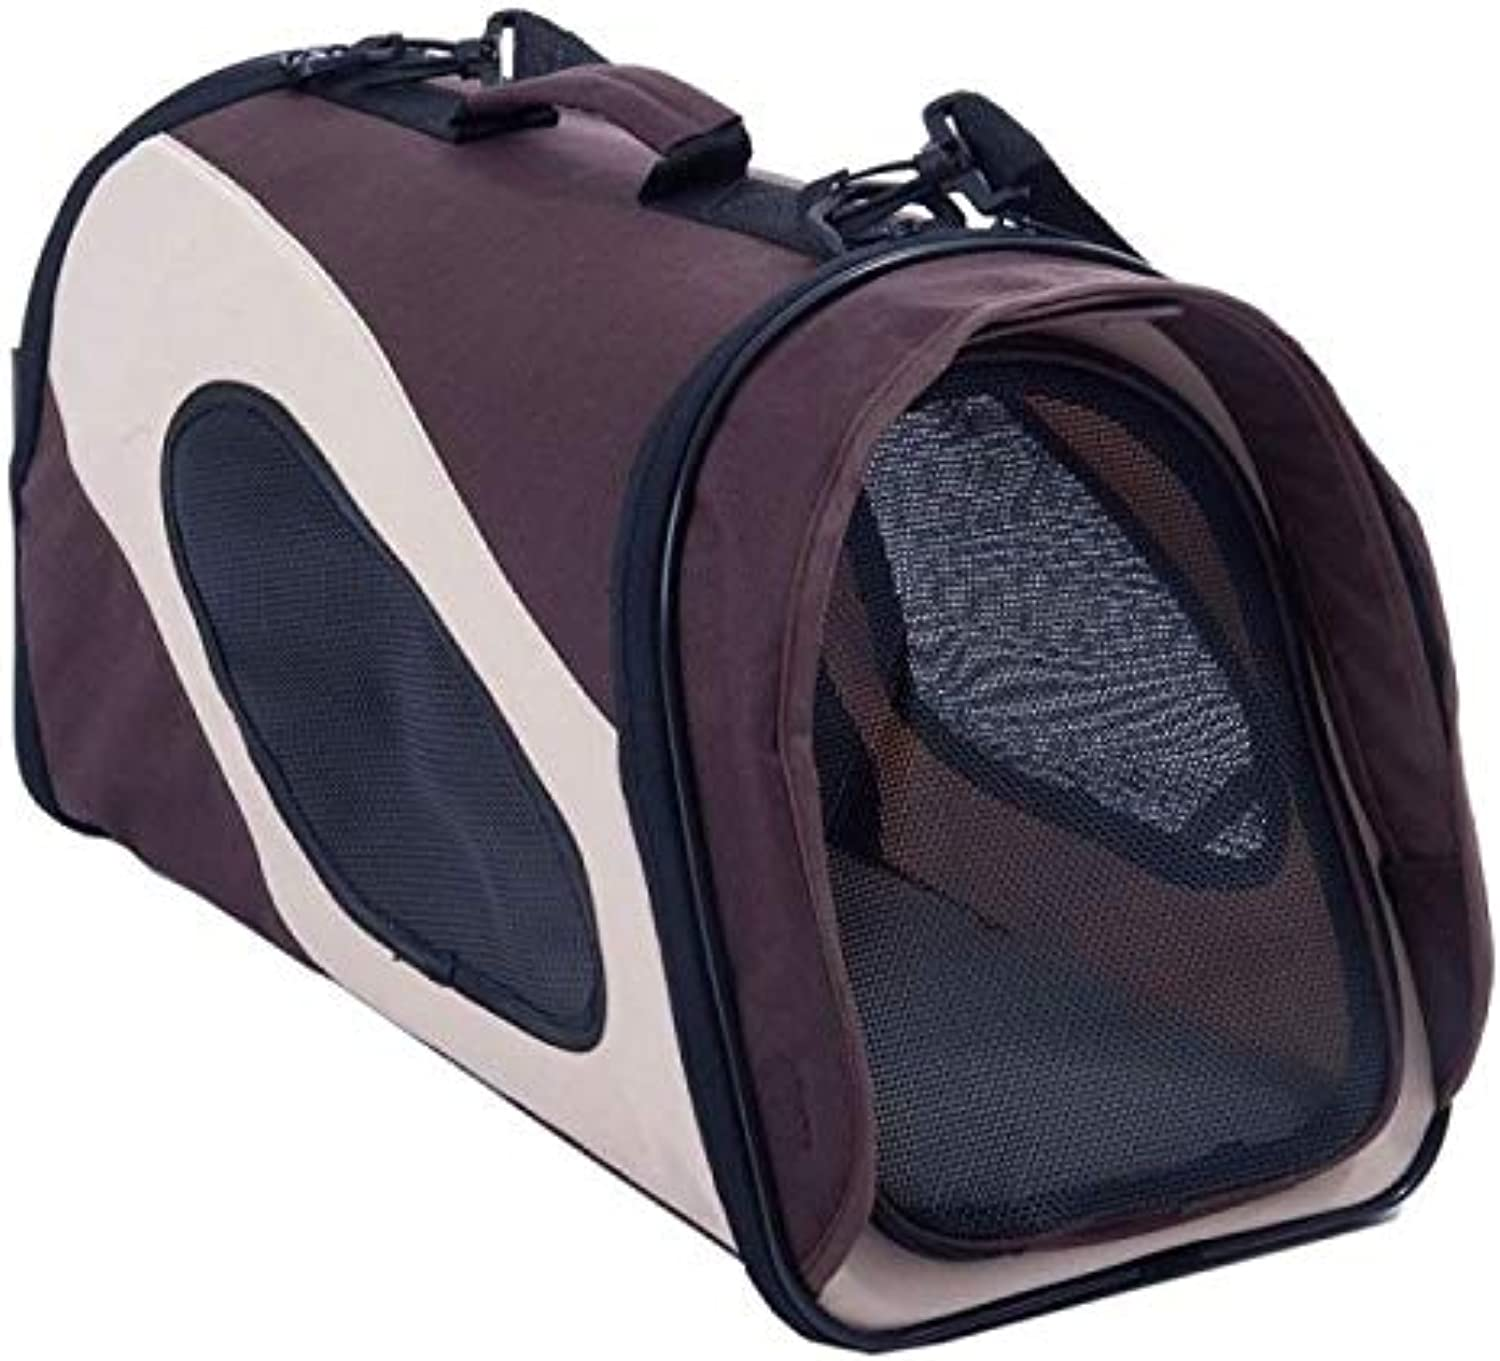 Generic  Bag Travel Bag Travel rier Bag Cat Car t Car Trai Holiday Carry Puppy Animal Holiday Carry Pup Pet Dog Carrier Shoulder ry Pup Train Vet